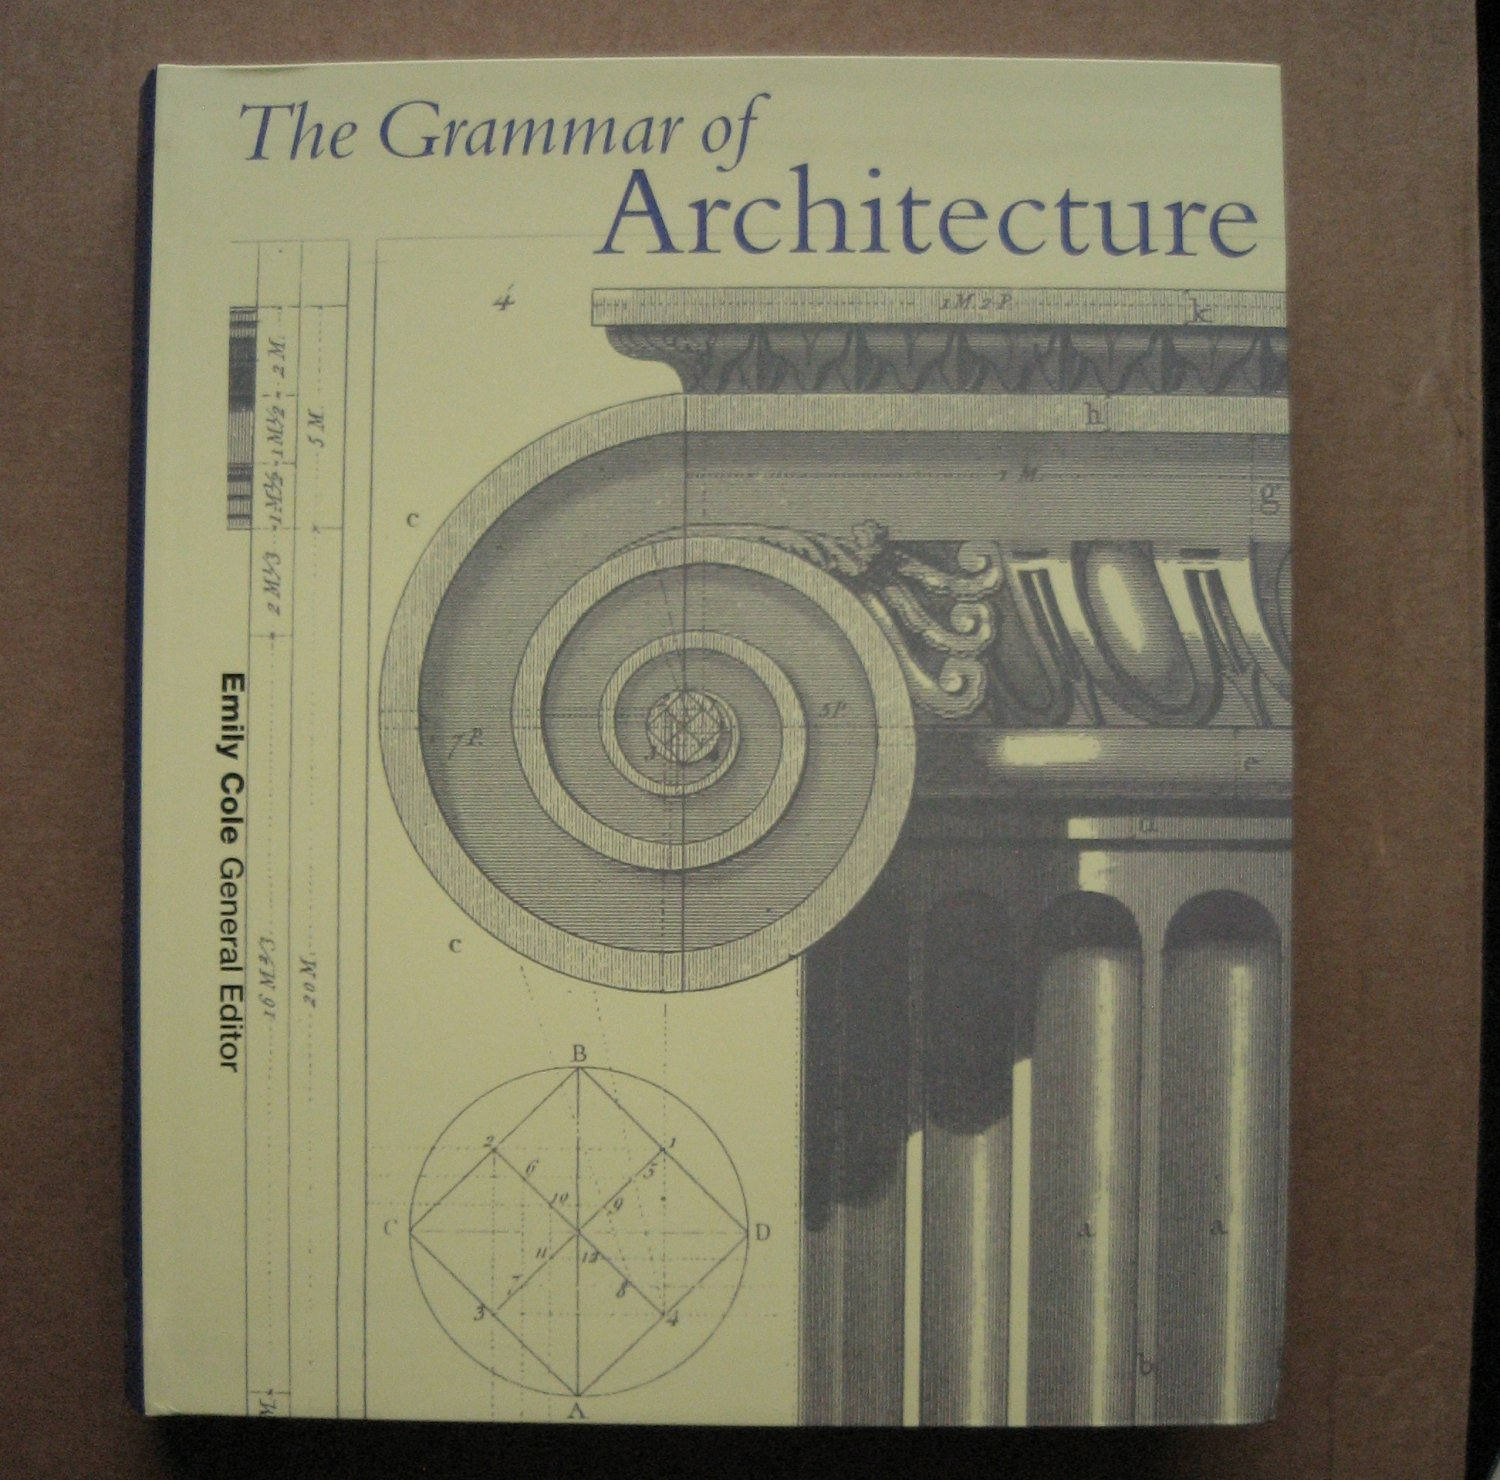 NEW BOOK The Grammar of Architecture by Emily Cole